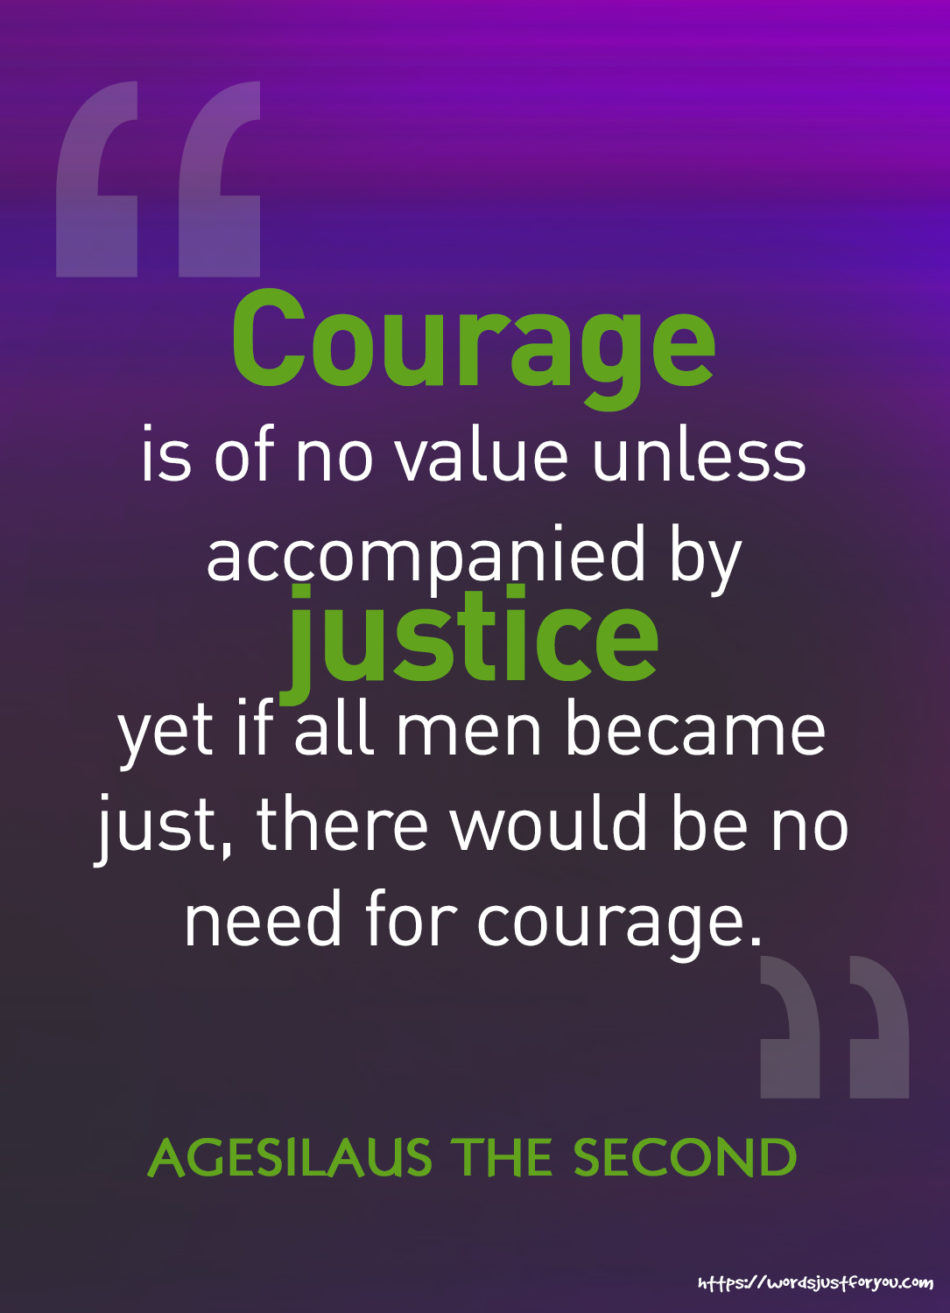 Famous Quotes by Agesilaus II about Courage and Justice